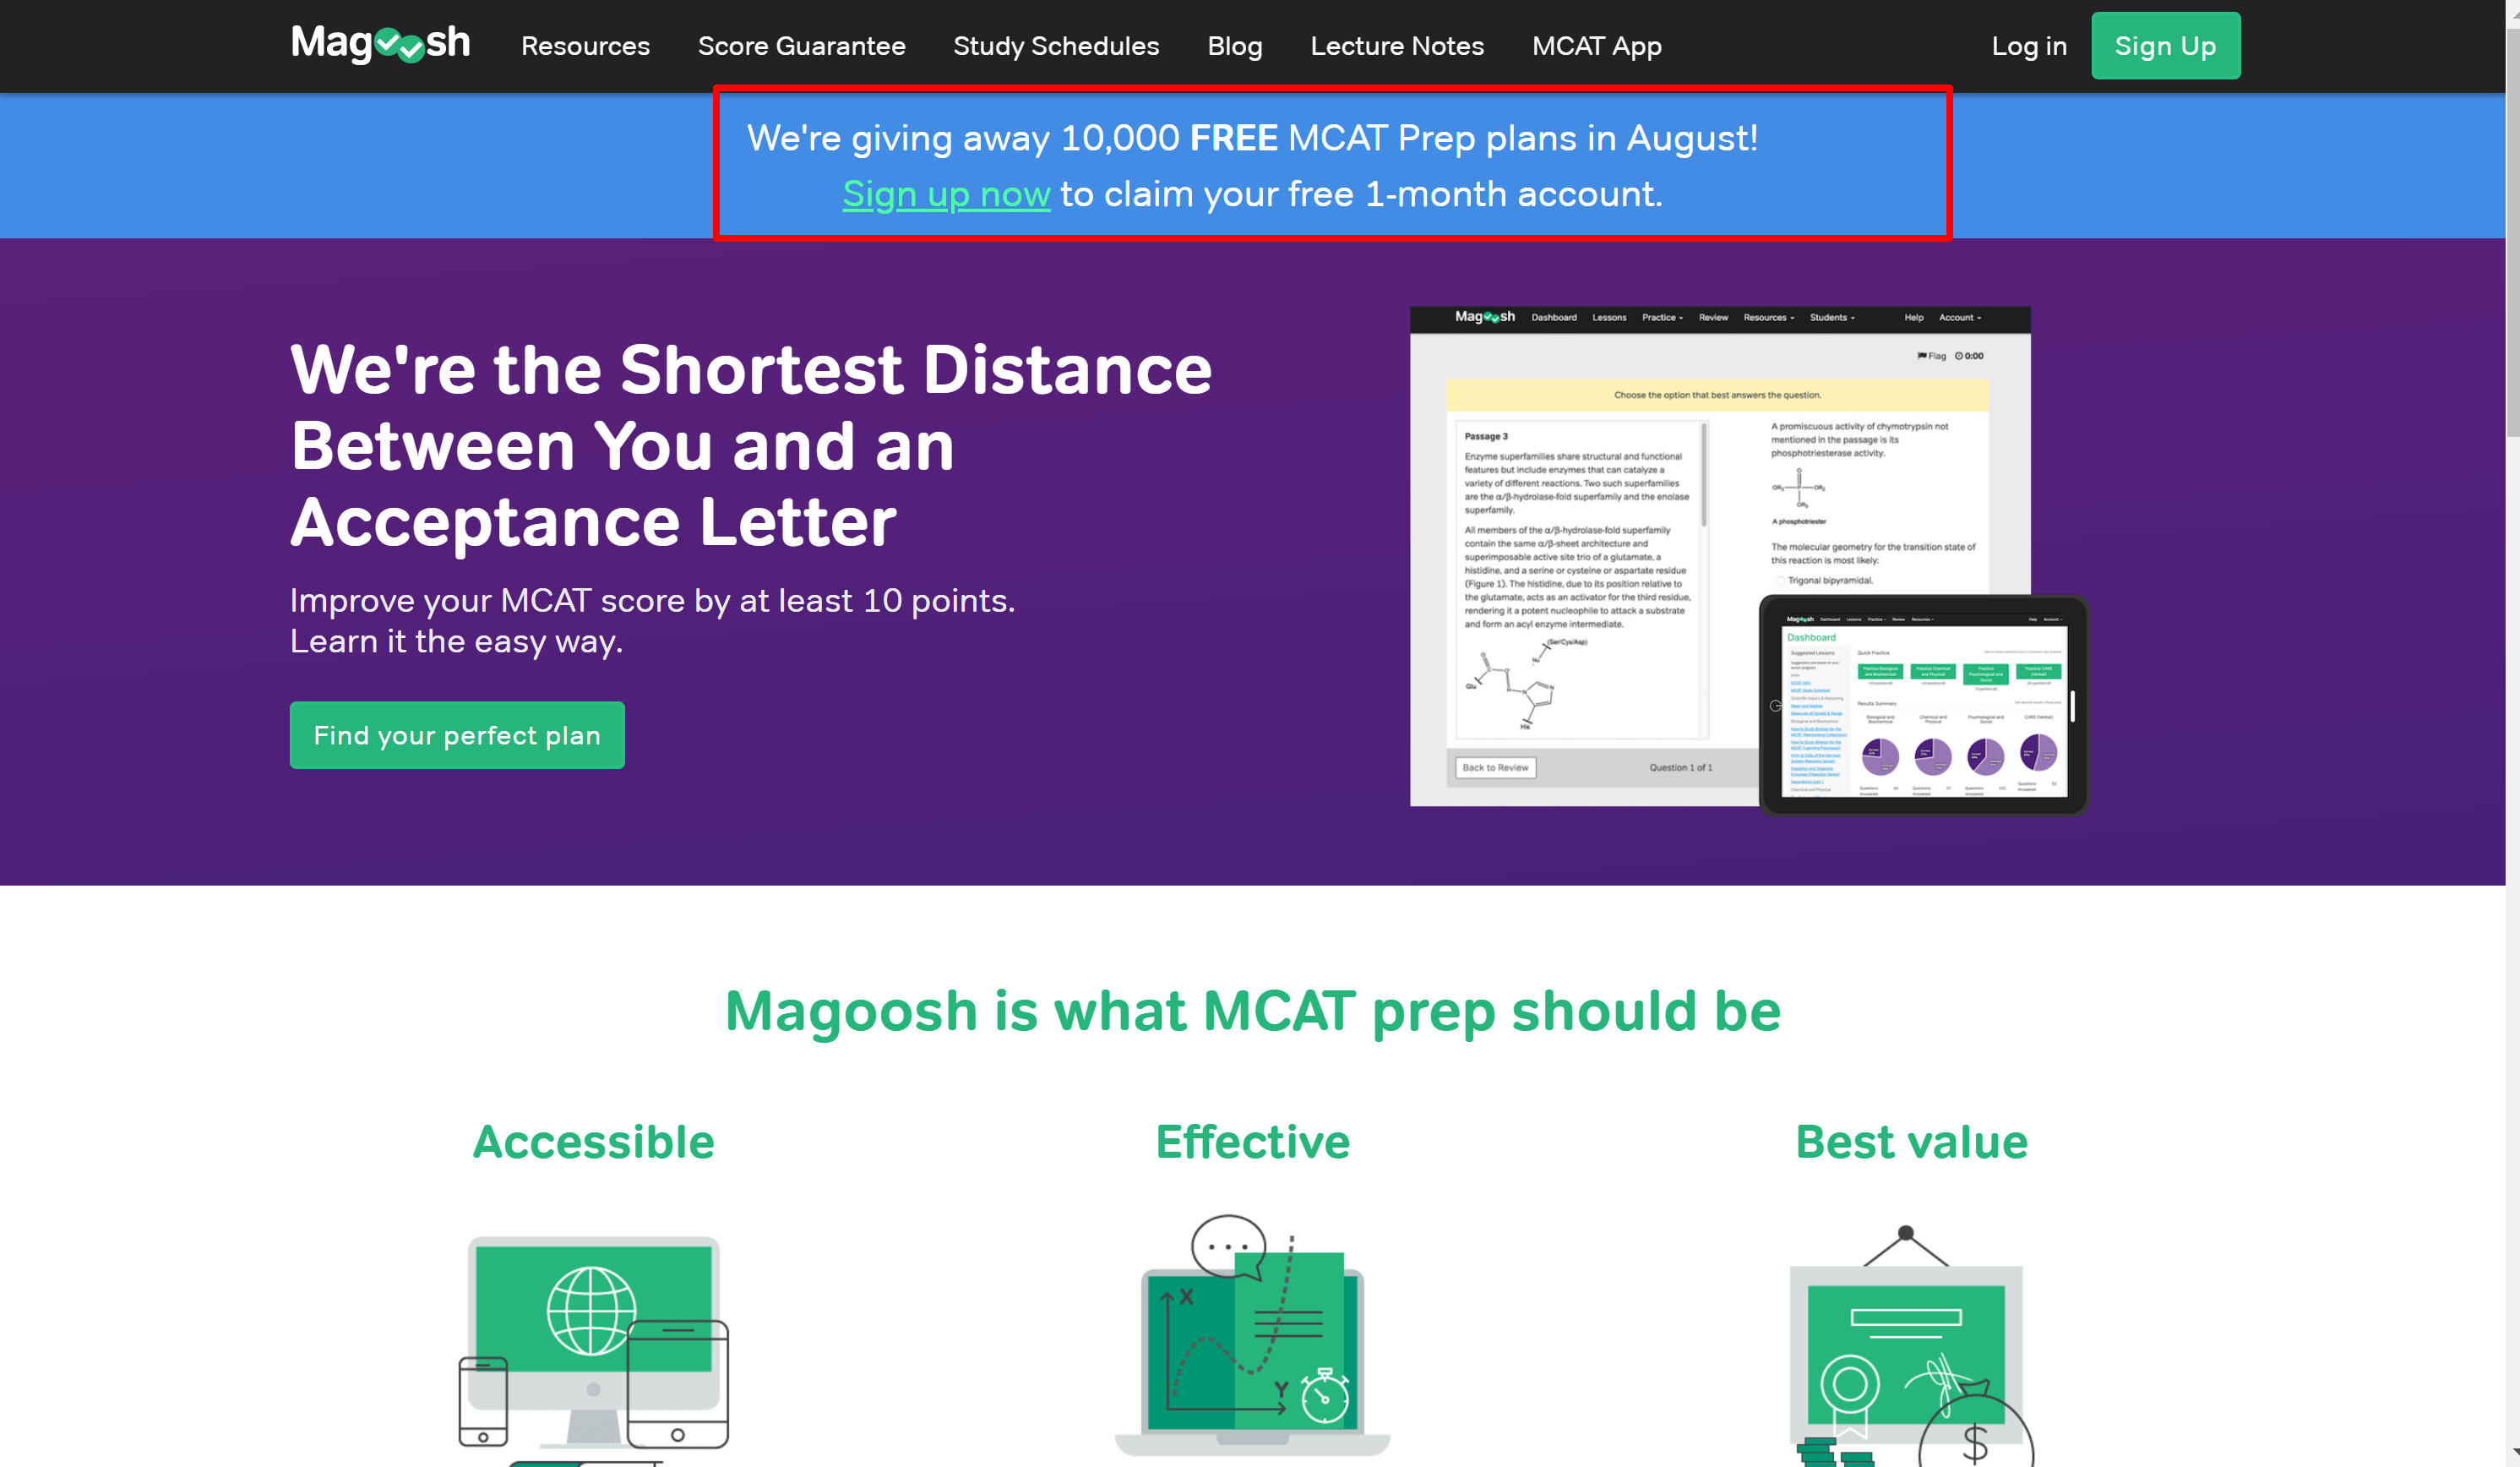 Magoosh Online Test Prep Company Website